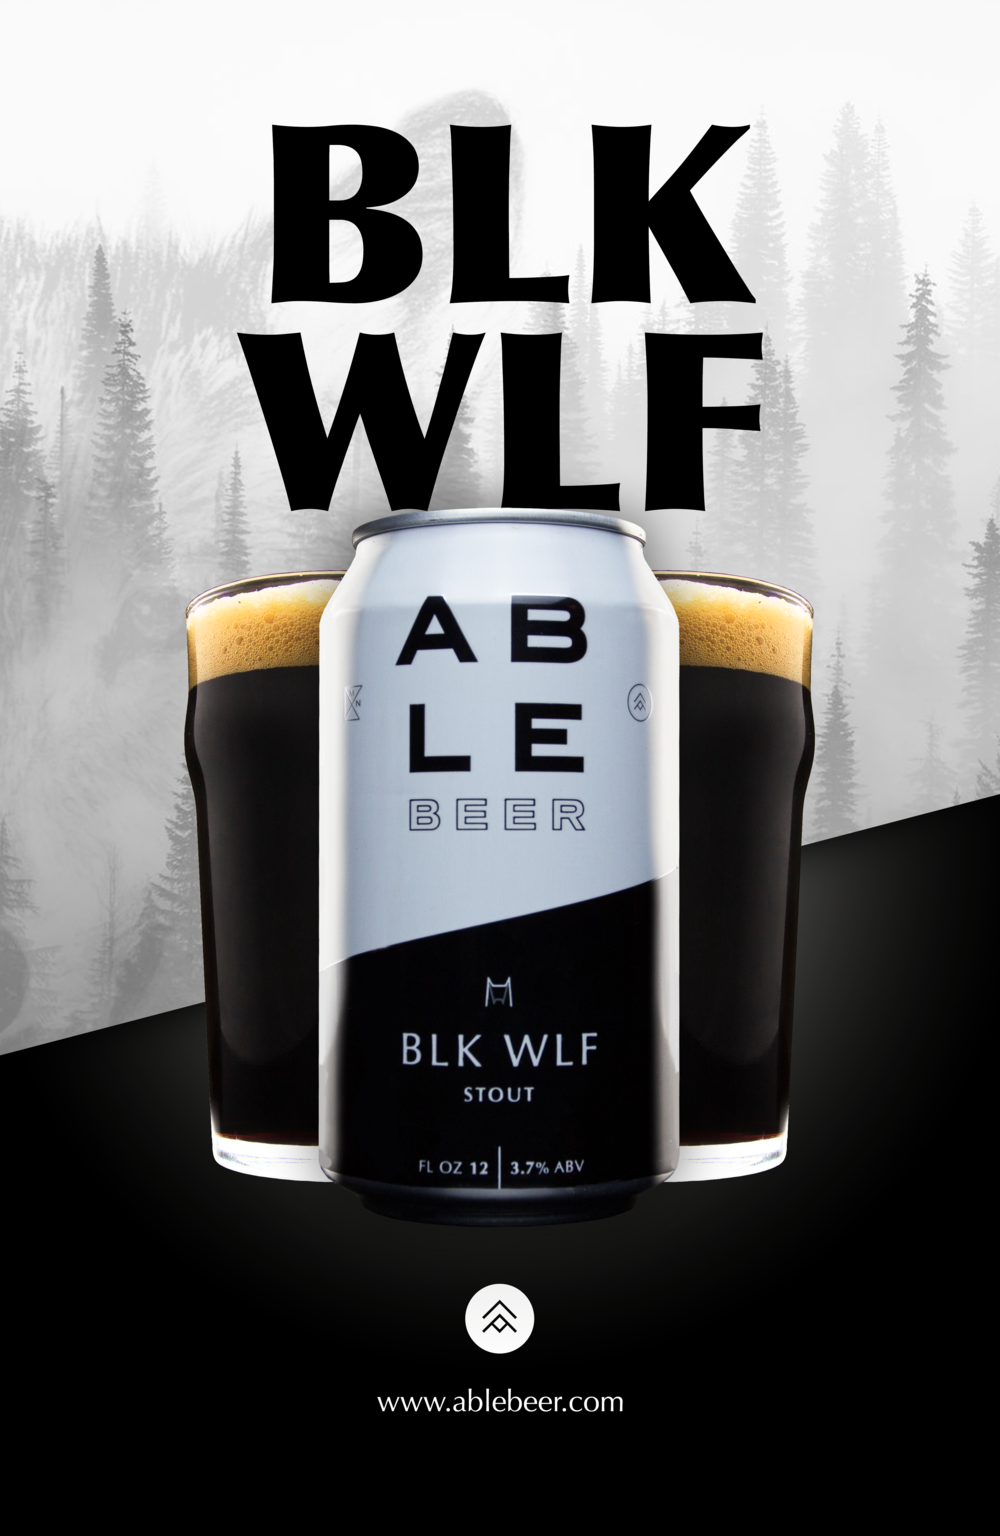 An ad concept I did for Able Beer. They did not hire me for this. I did the photography and the graphic design.